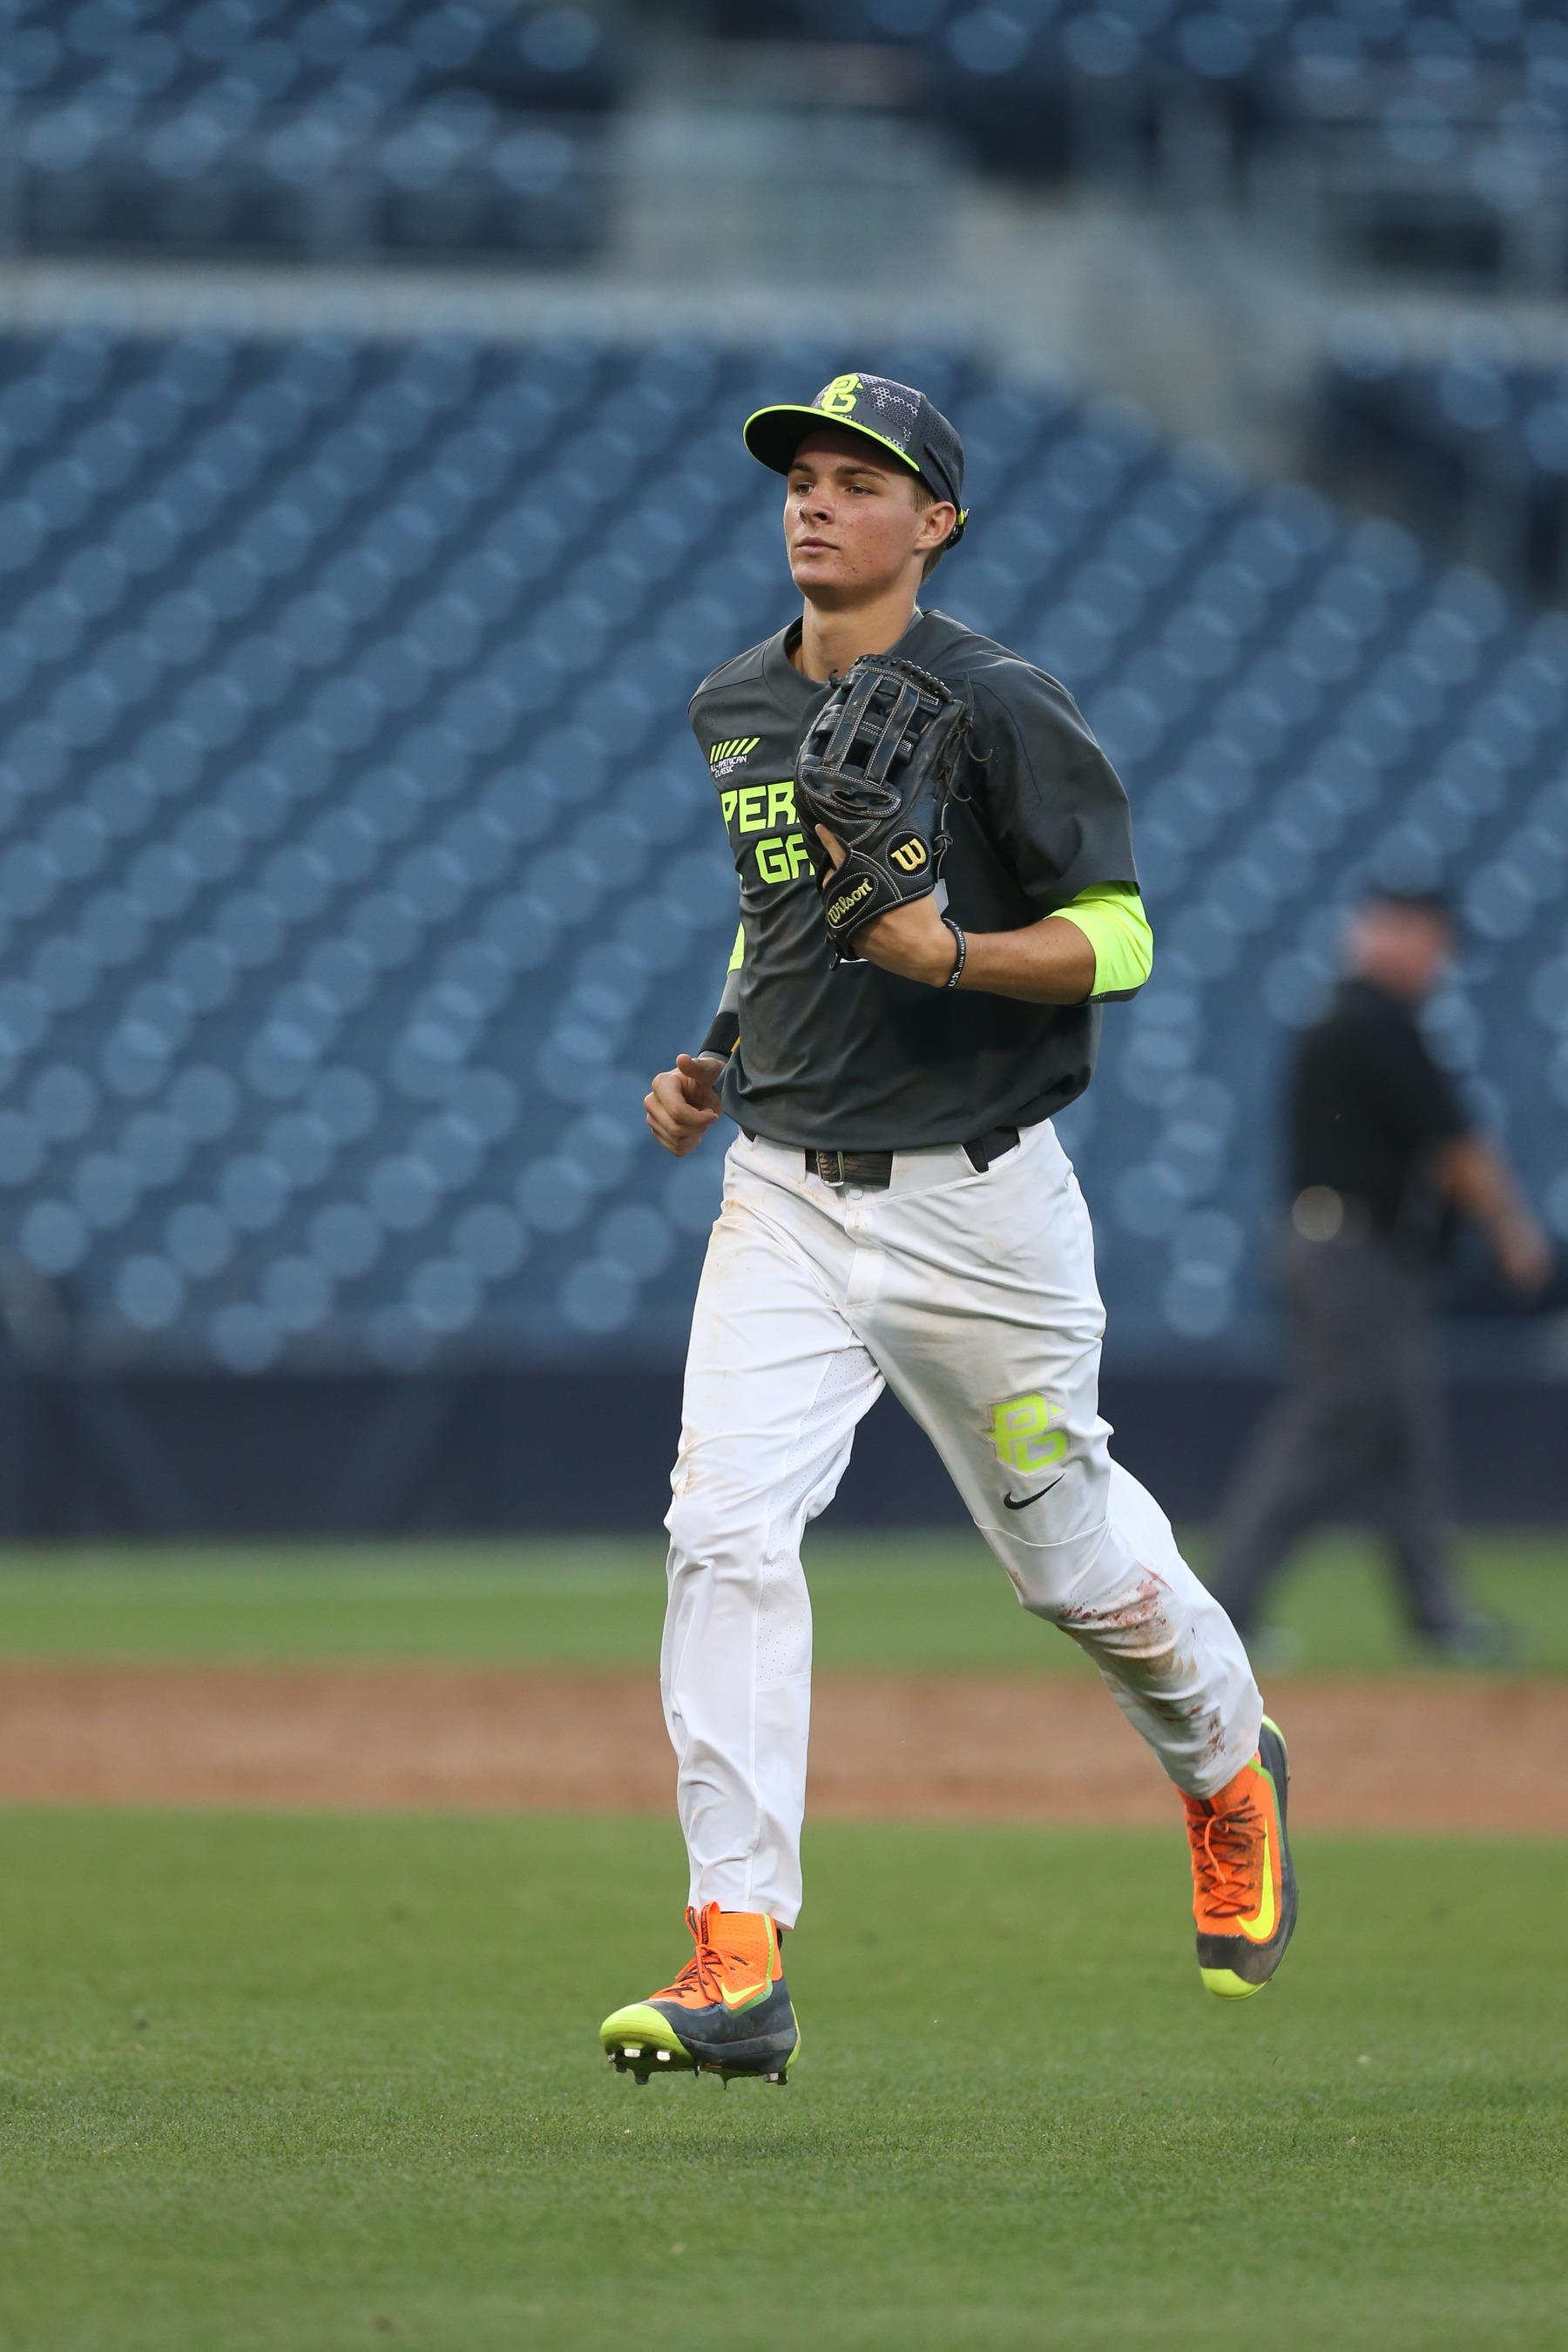 Mickey Moniak of the West team during the 2015 Perfect Game All-American Classic at Petco Park on August 16, 2015 in San Diego, California.